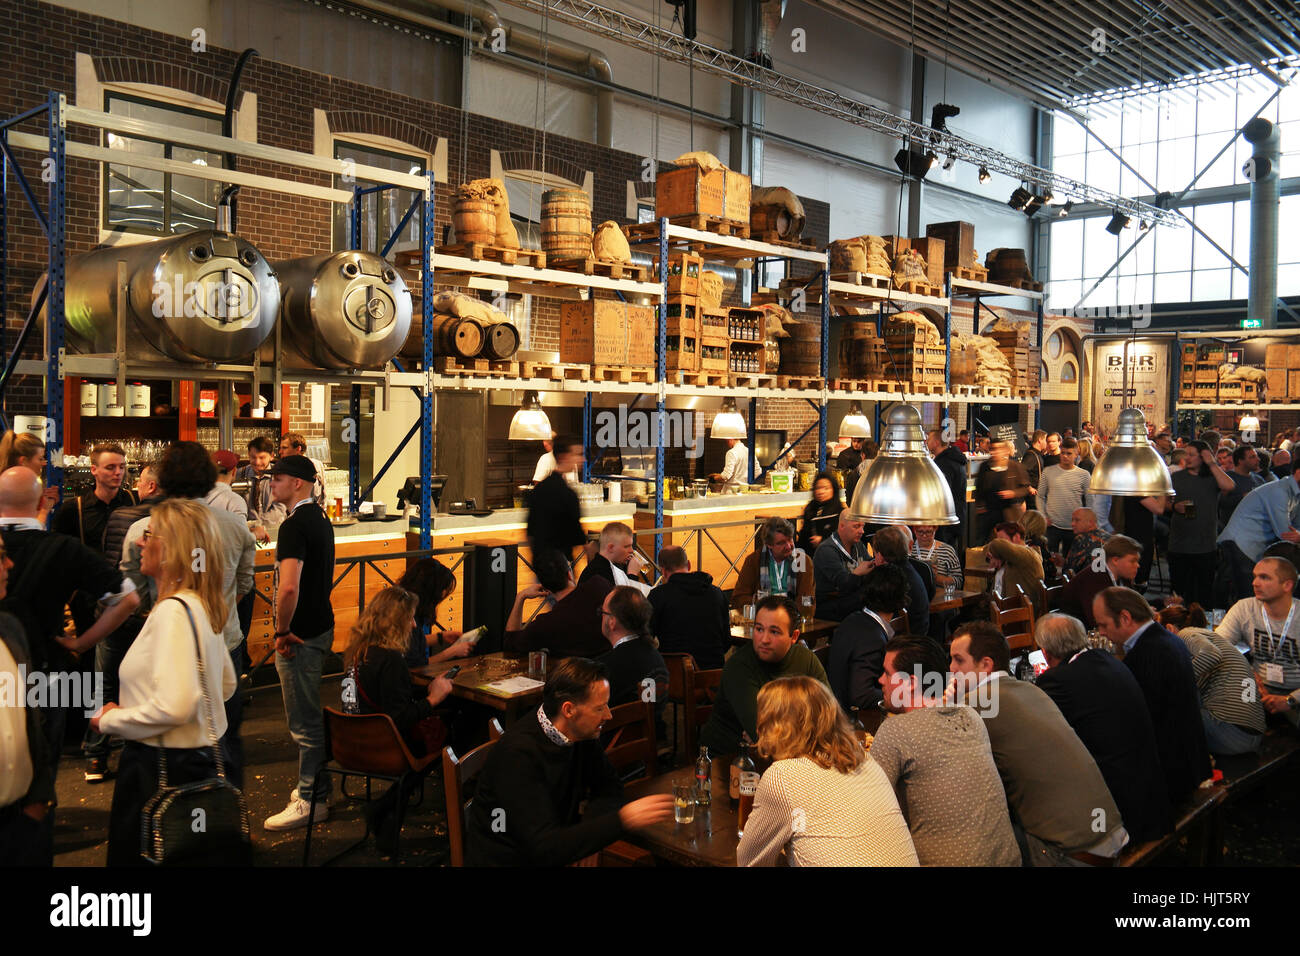 De Bierfabriek on the Amsterdam Annual Horecava hospitality trade fair. - Stock Image